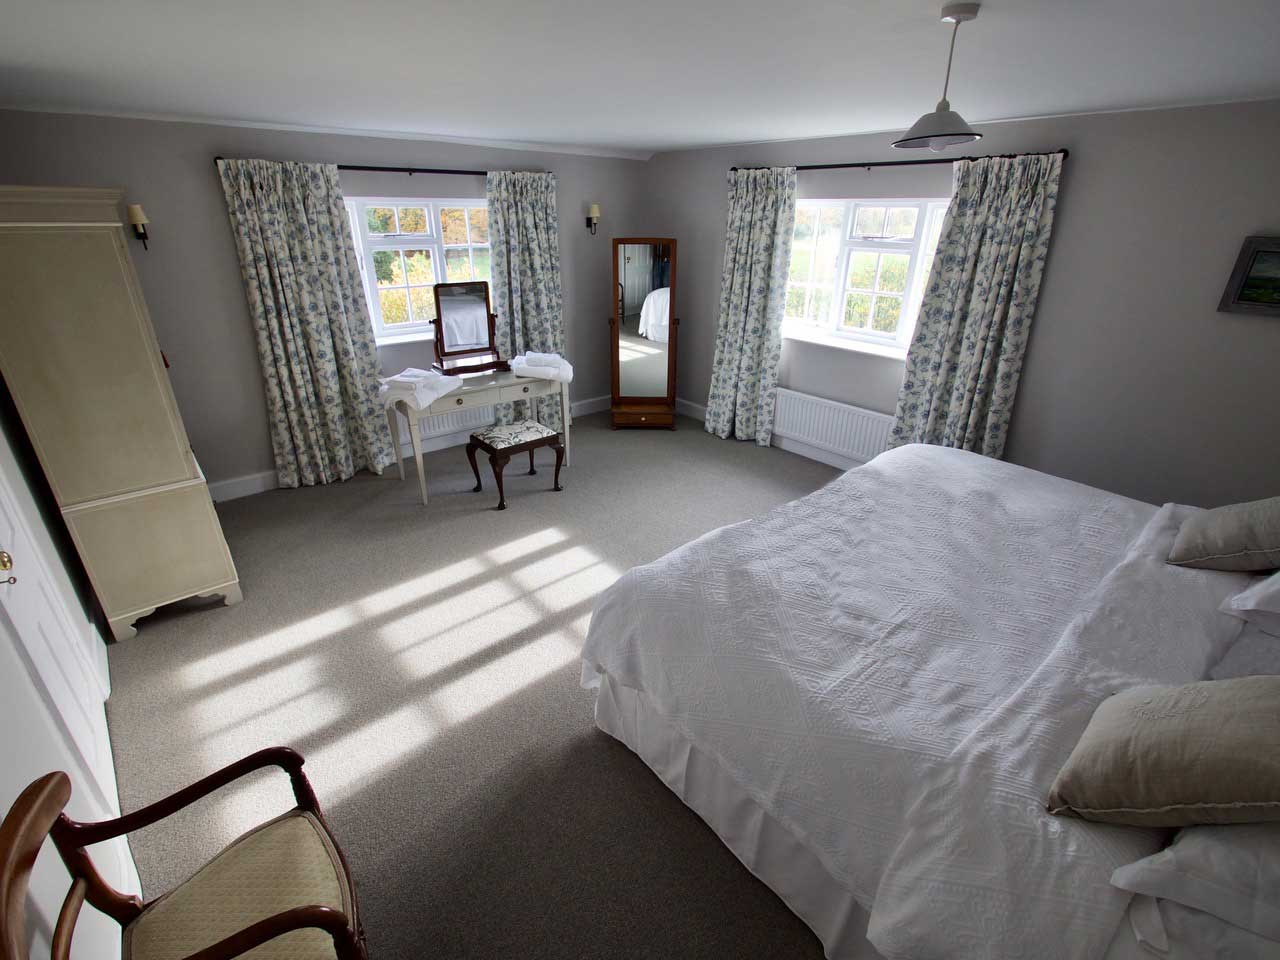 The Garden Cottage Bridal Suite - wedding accommodation in Dorset